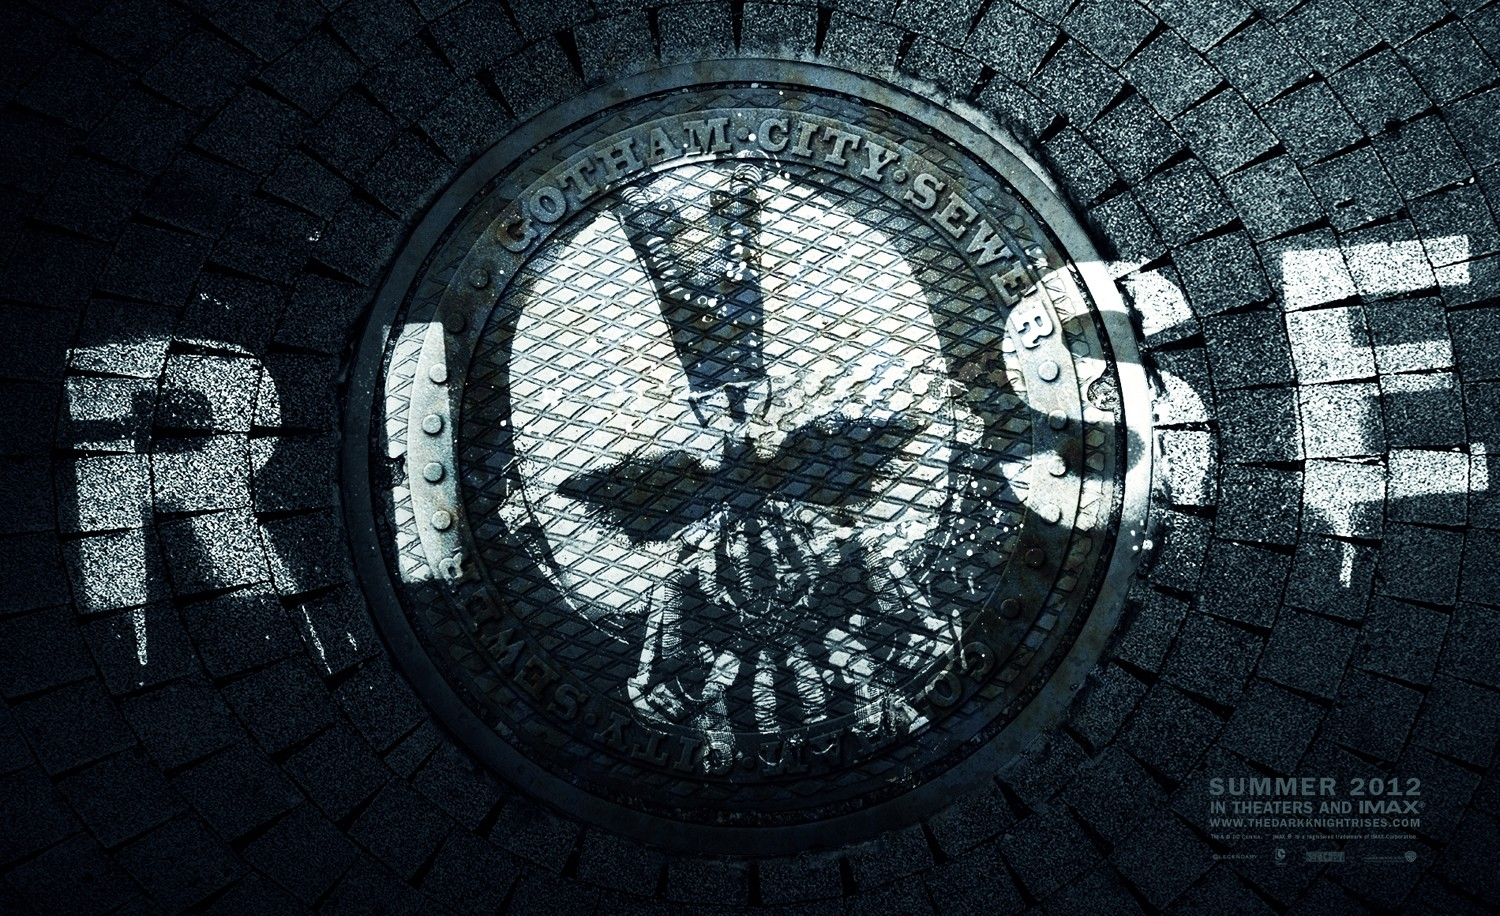 The Dark Knight Rises Sewer Rise Poster